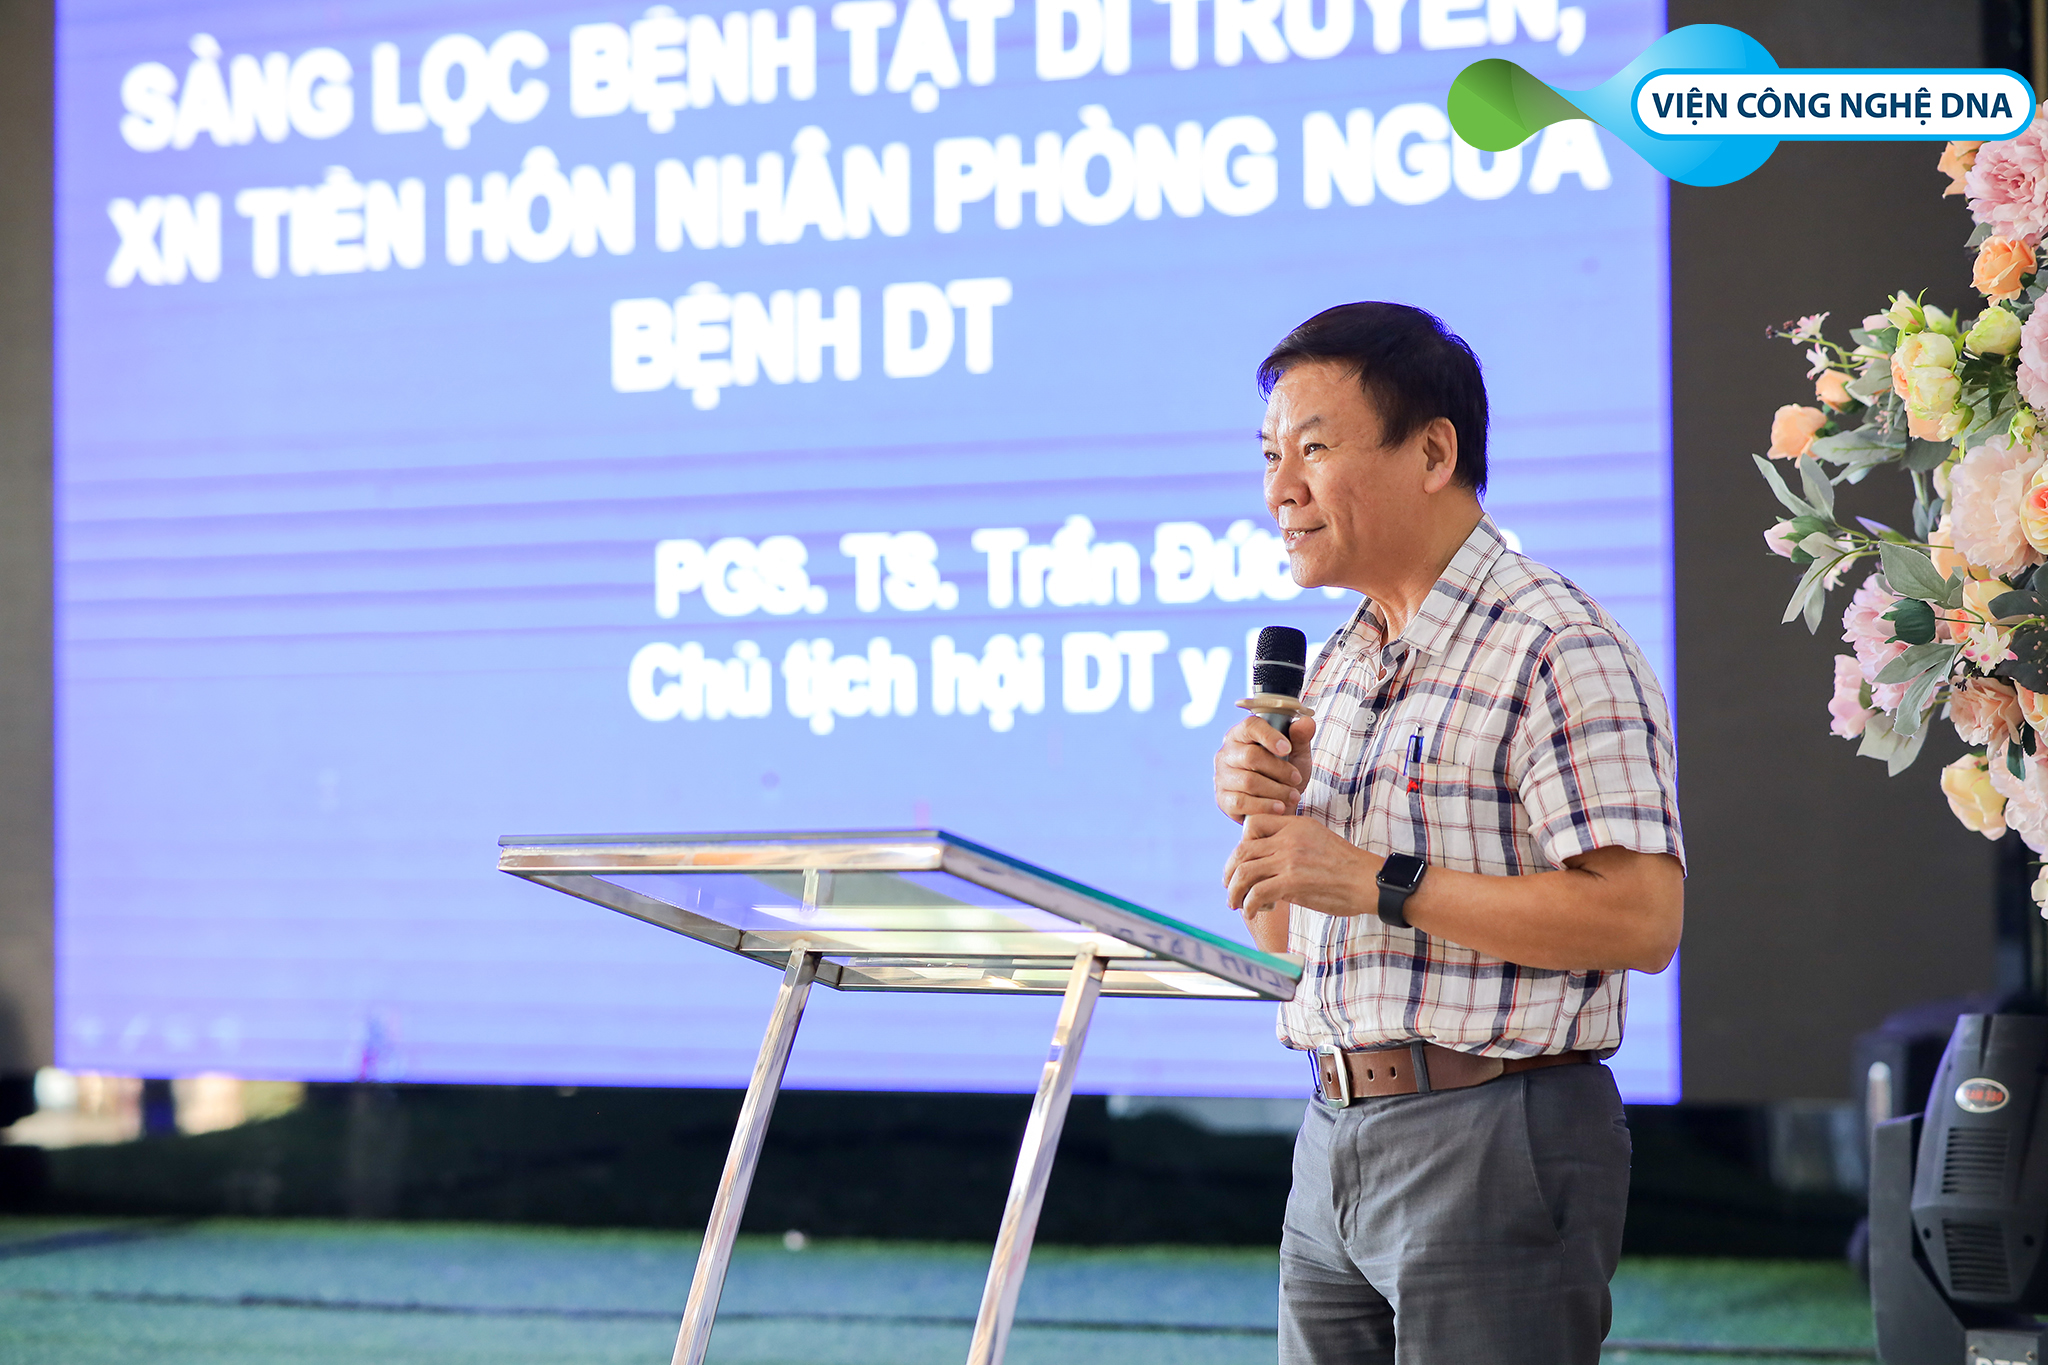 hoi thao sang loc truoc sinh vien cong nghe dna 5 1